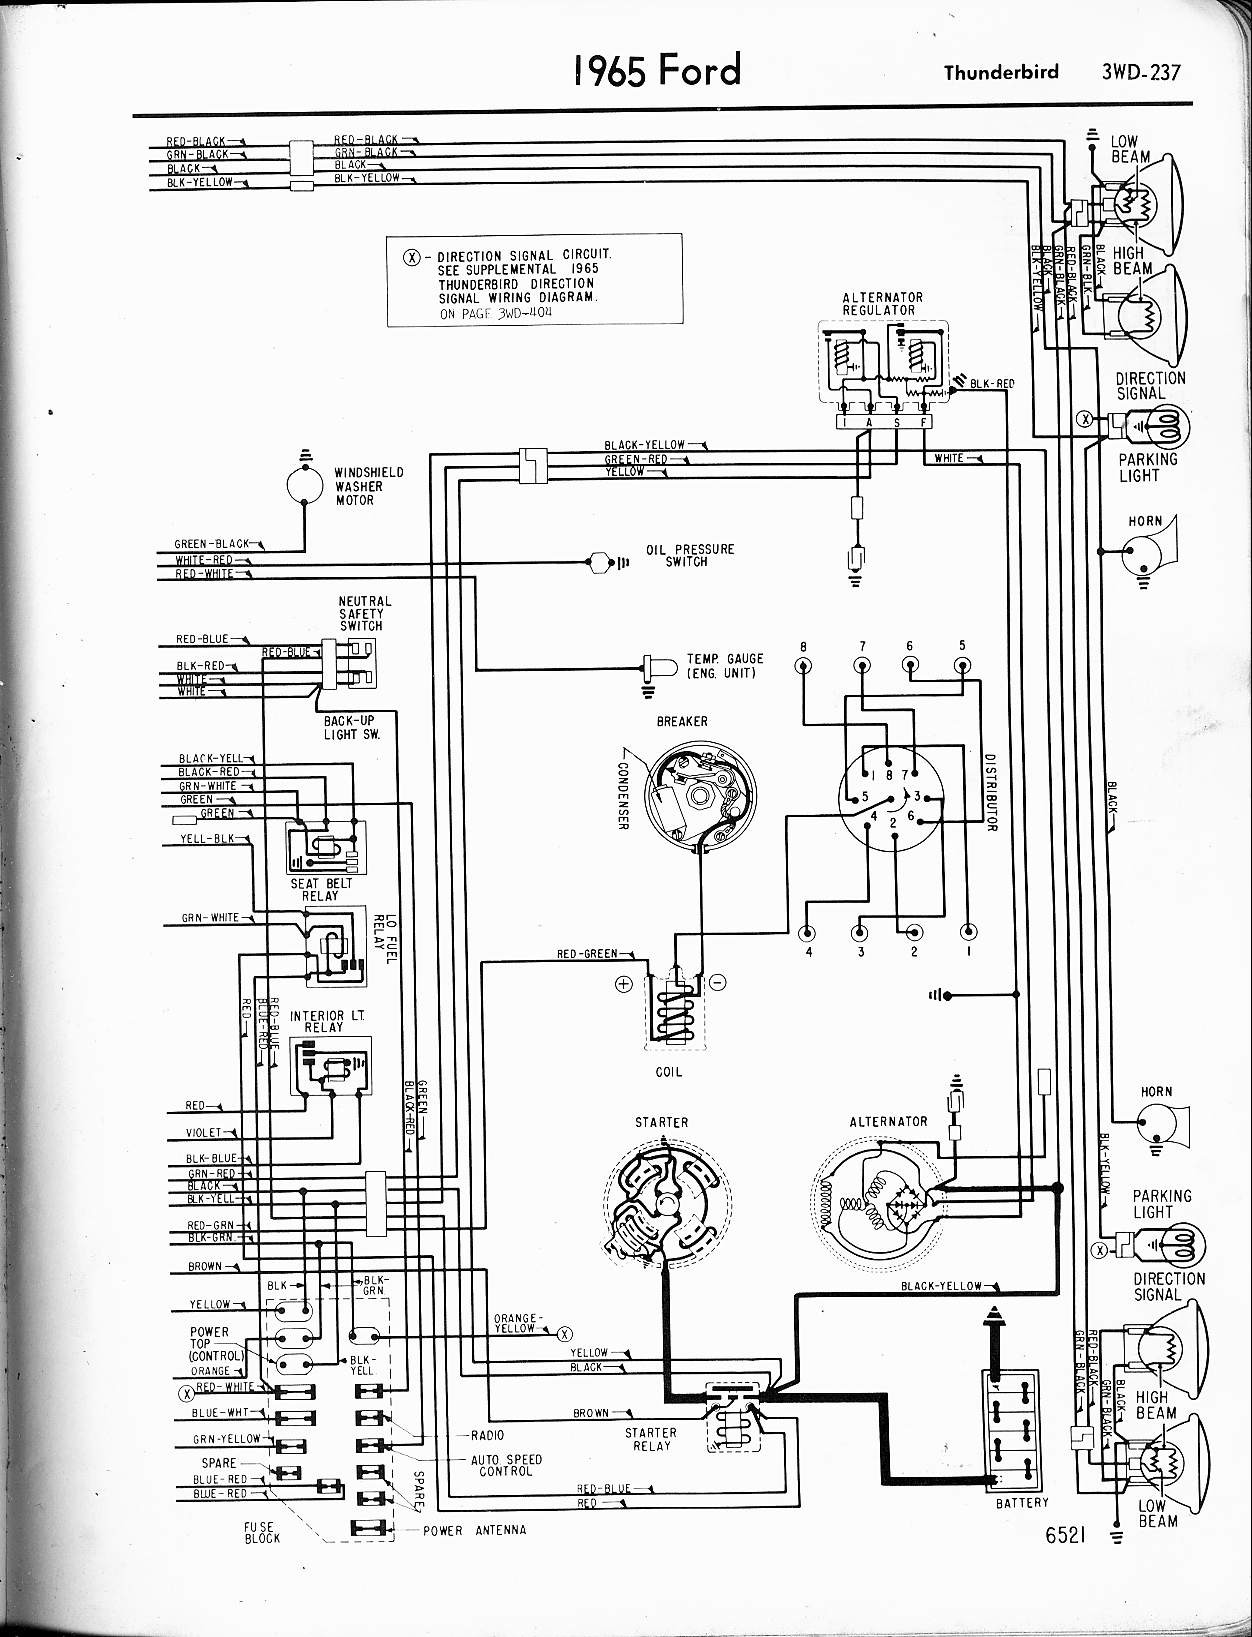 Eurovox wiring diagram diy wiring diagrams eurovox wiring colour code for a holden vx with steering fixya rh javastraat co eurovox car stereo wiring diagram eurovox radio wiring diagram asfbconference2016 Image collections